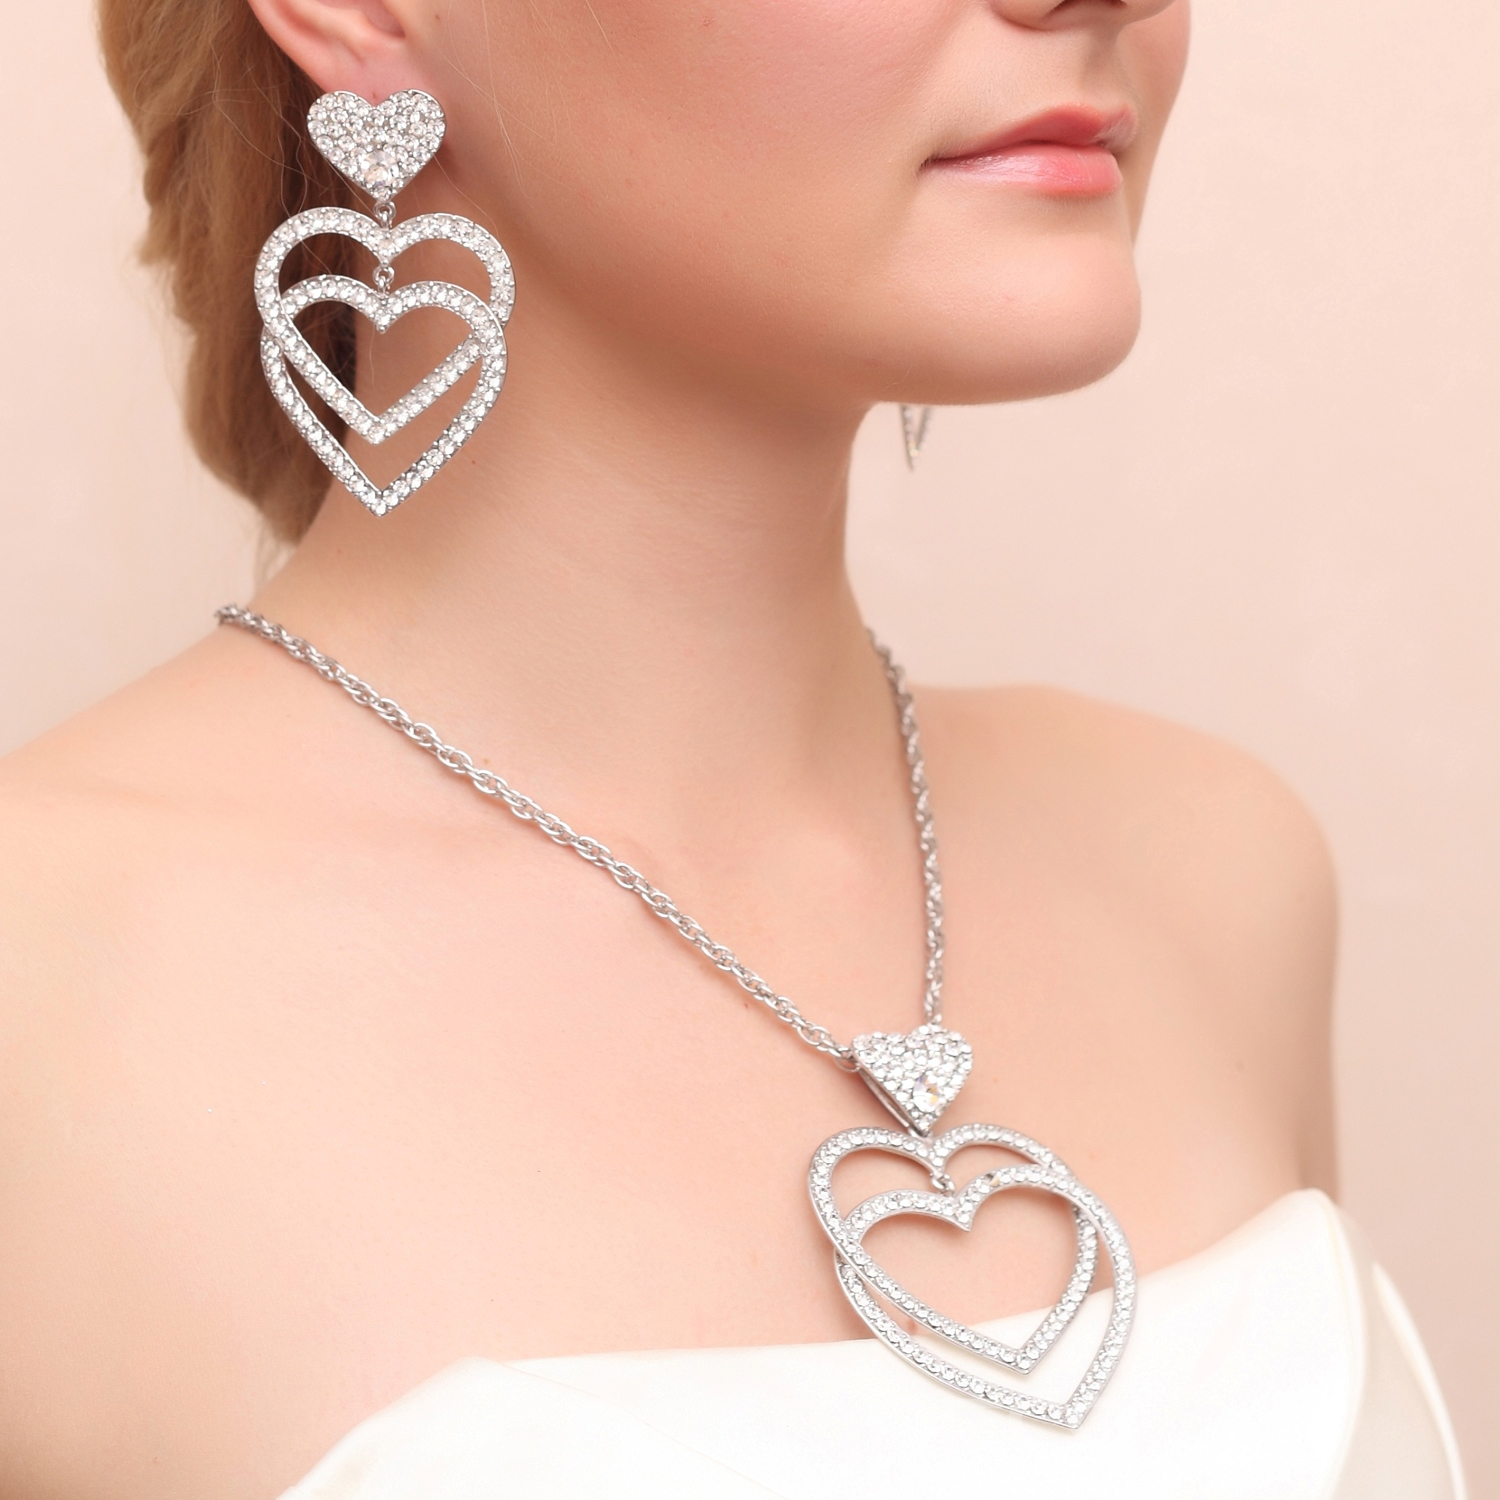 Ericdress Chic Alloy Rhinestone Heart Shaped Wedding Jewelry Set